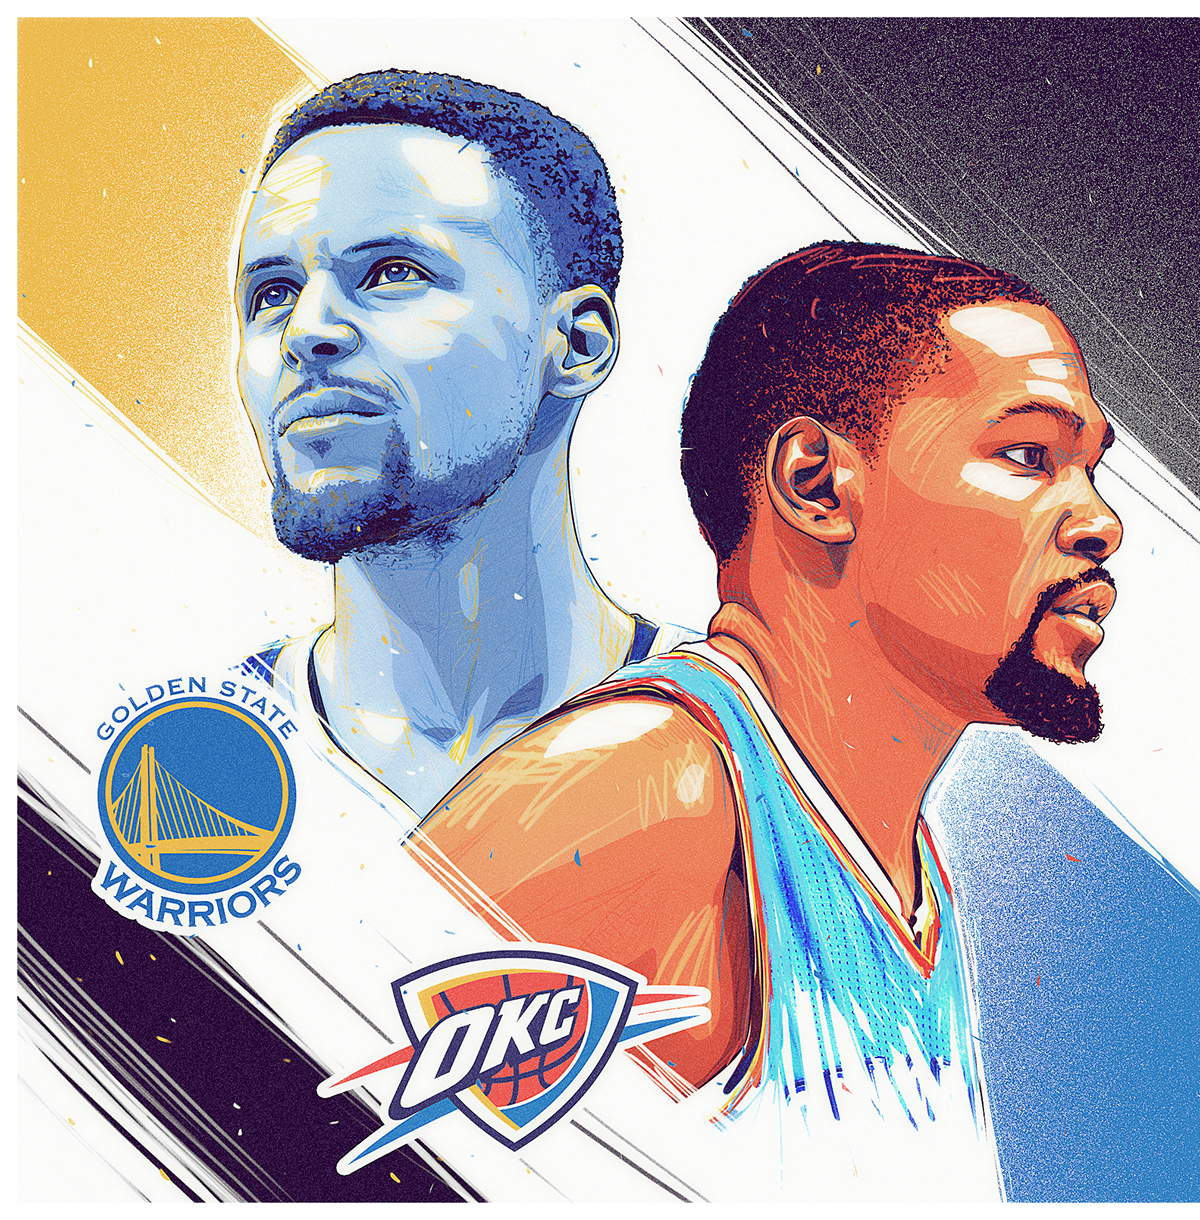 Golden State Warriors vs OKC Thunder WCF Portrait